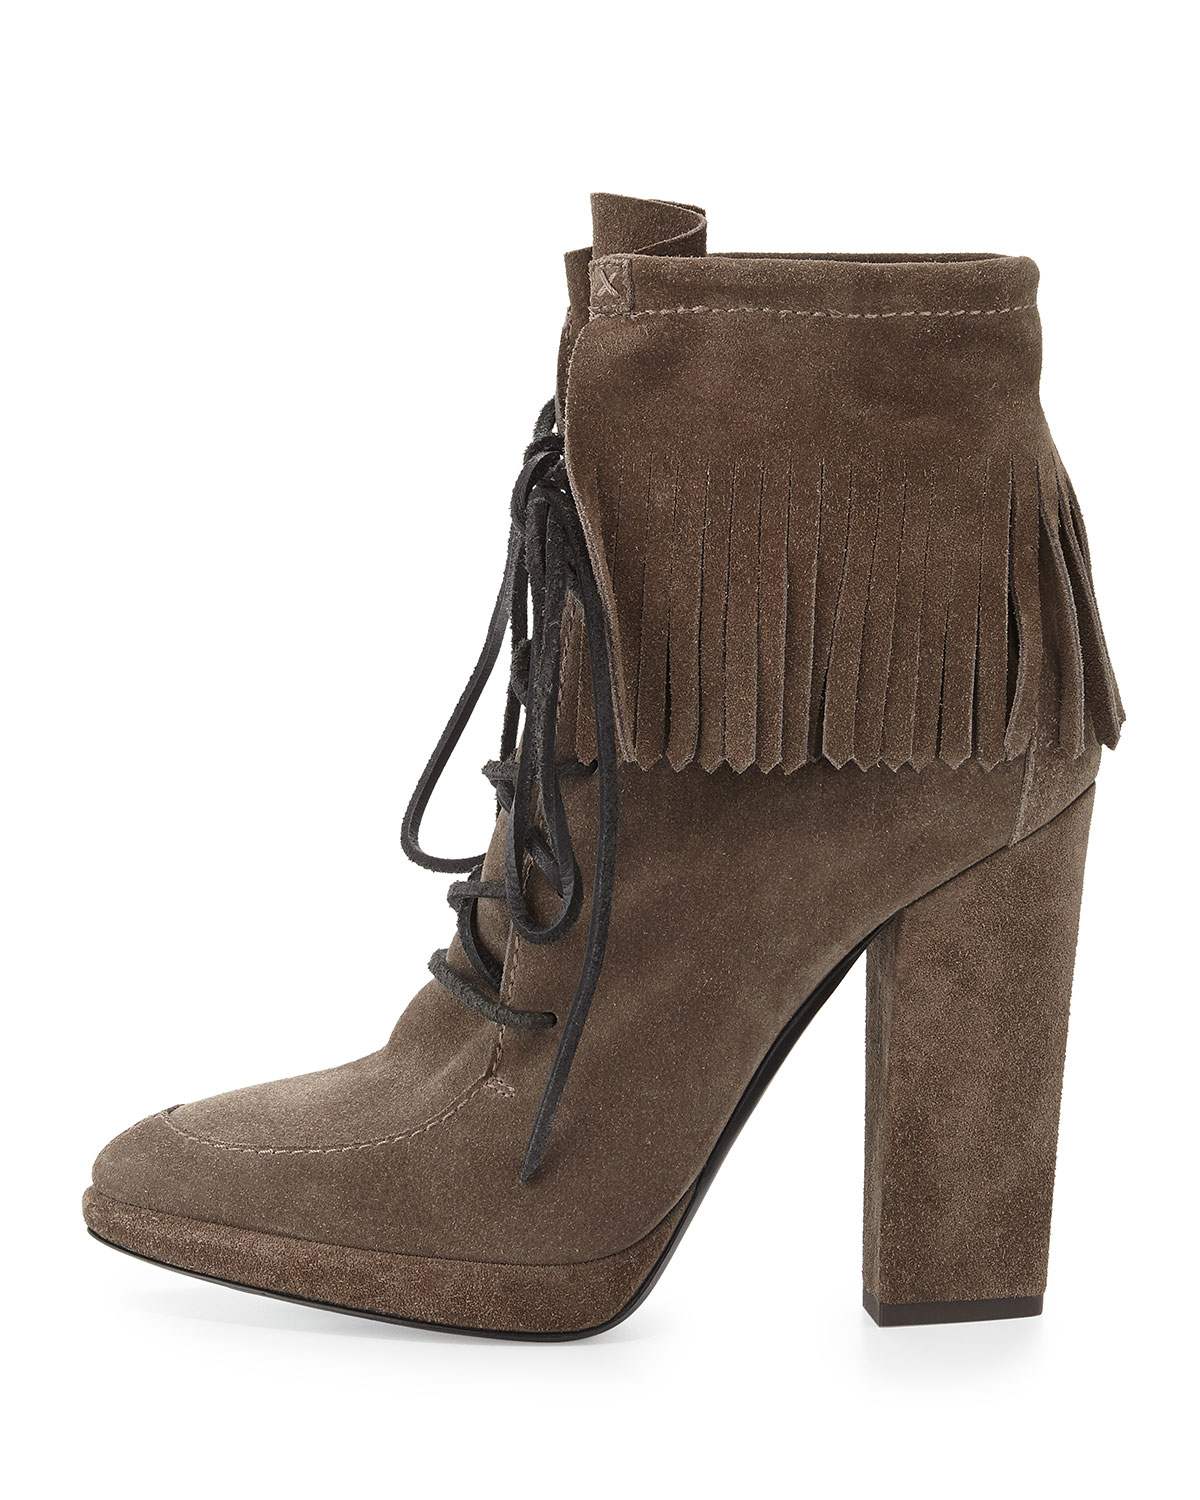 Lyst - Giuseppe Zanotti Lace-Up Suede Fringed Boots in Gray fe0ff1d6100e